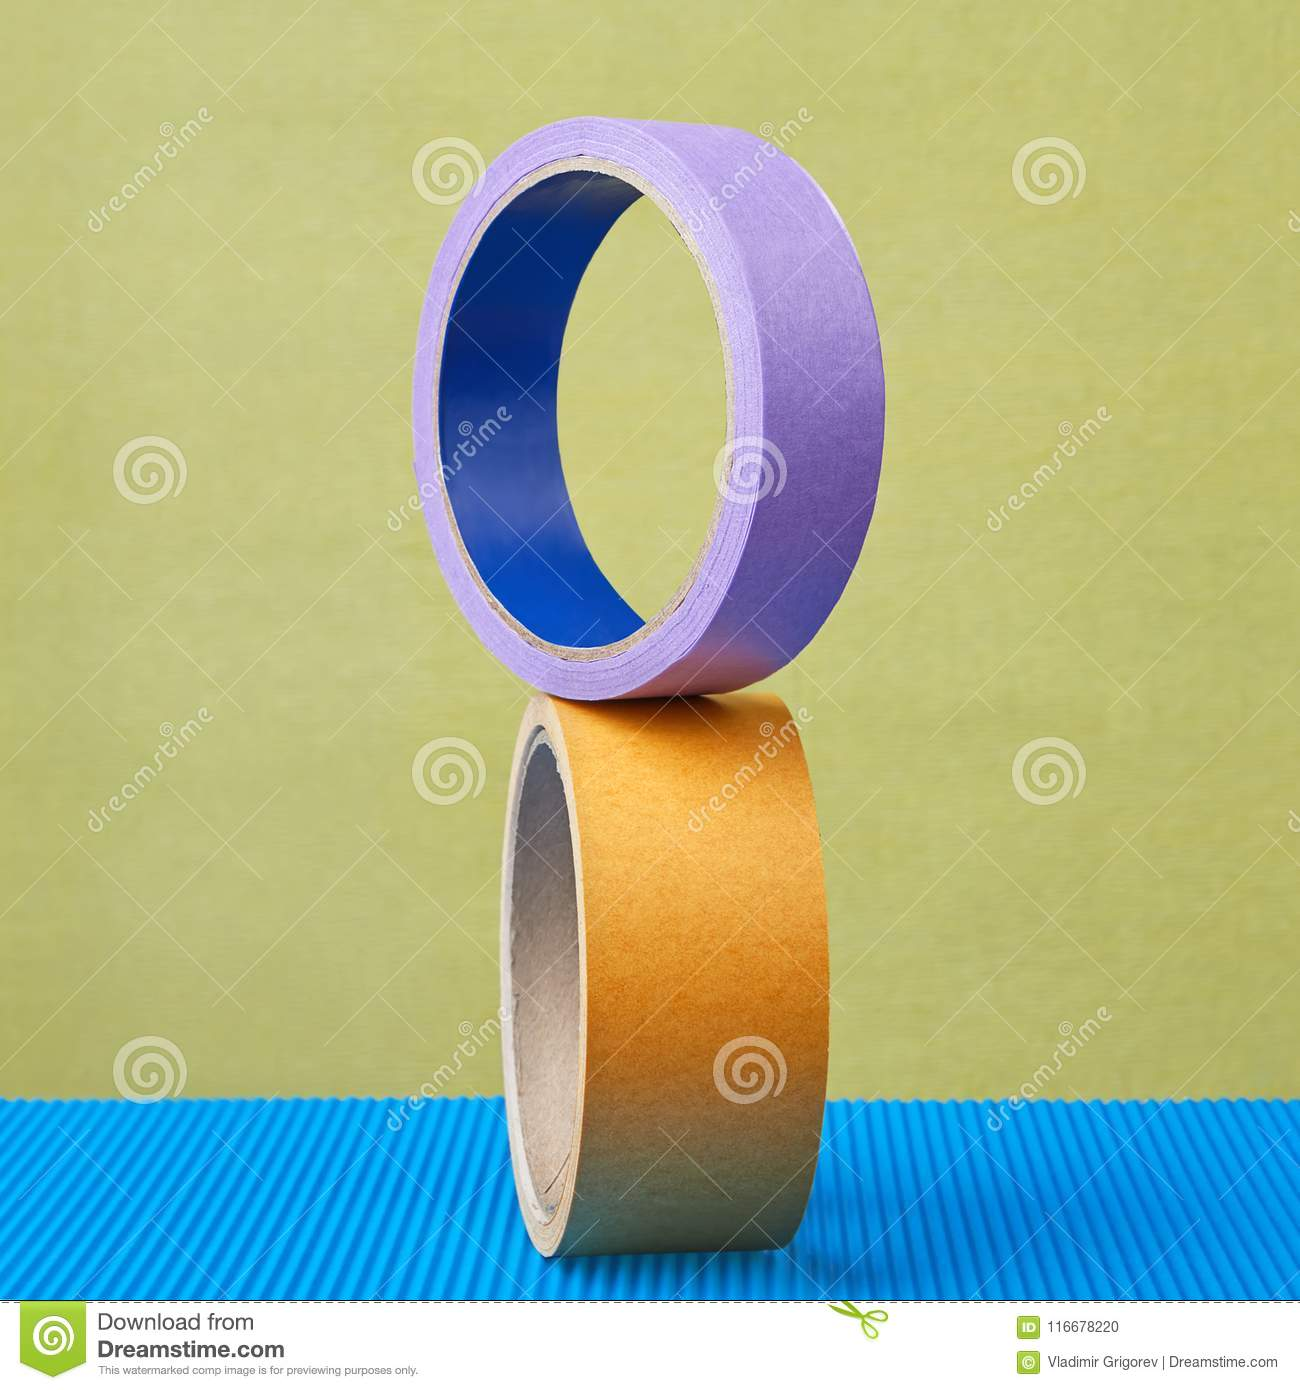 Two rolls of sticky tape color equilibrium on purple background.